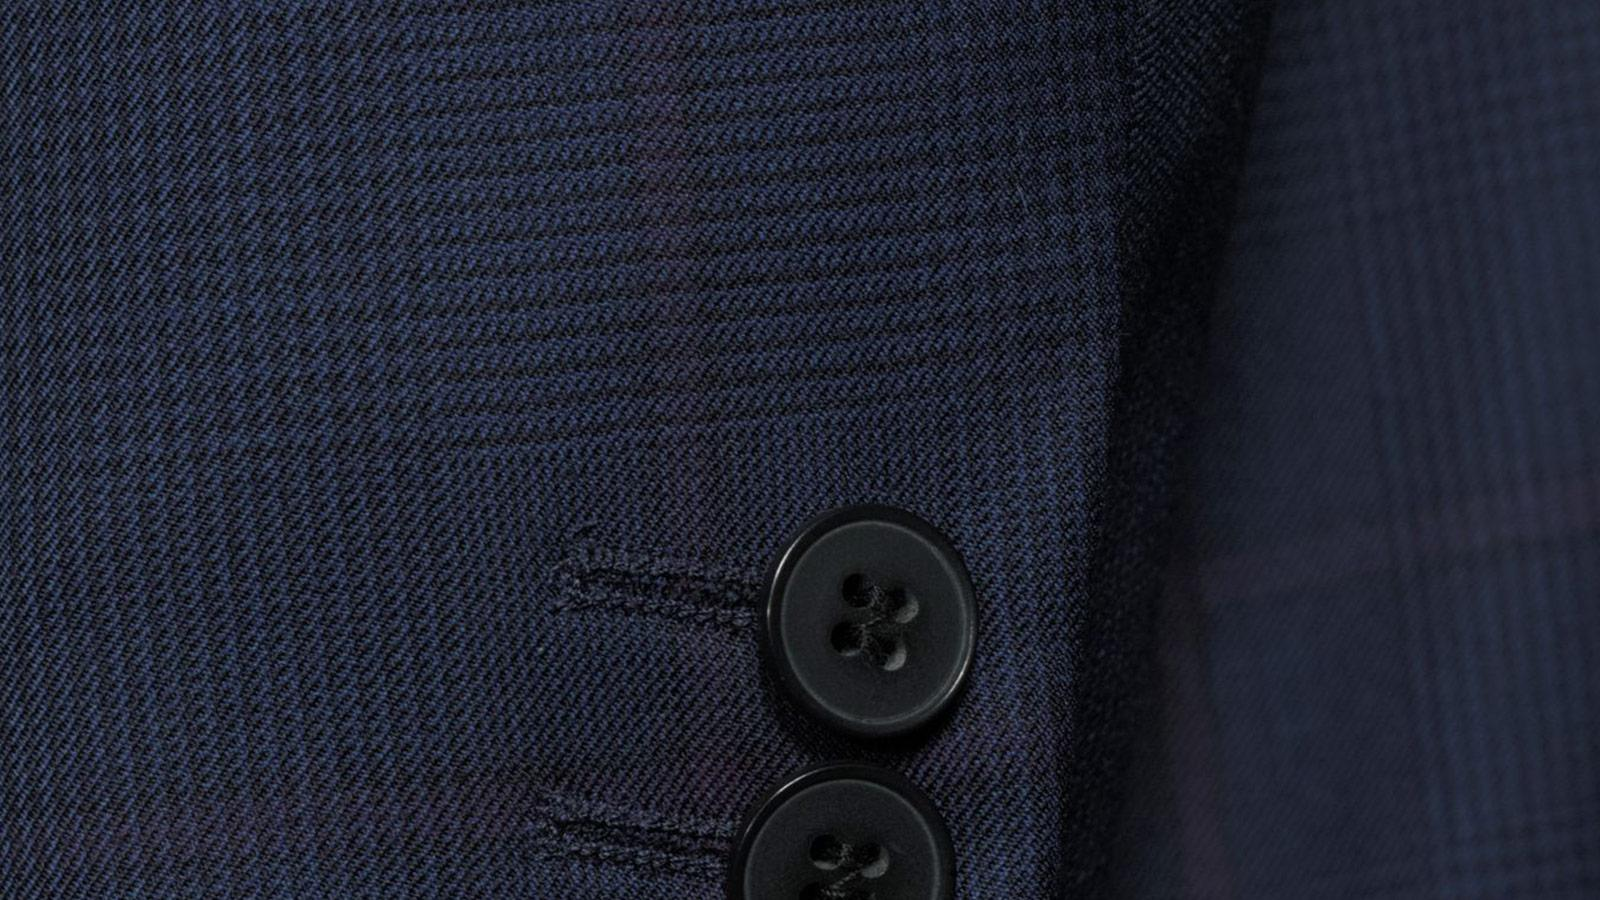 Vendetta Premium Lavender Check Navy Plaid Suit - slider image 1